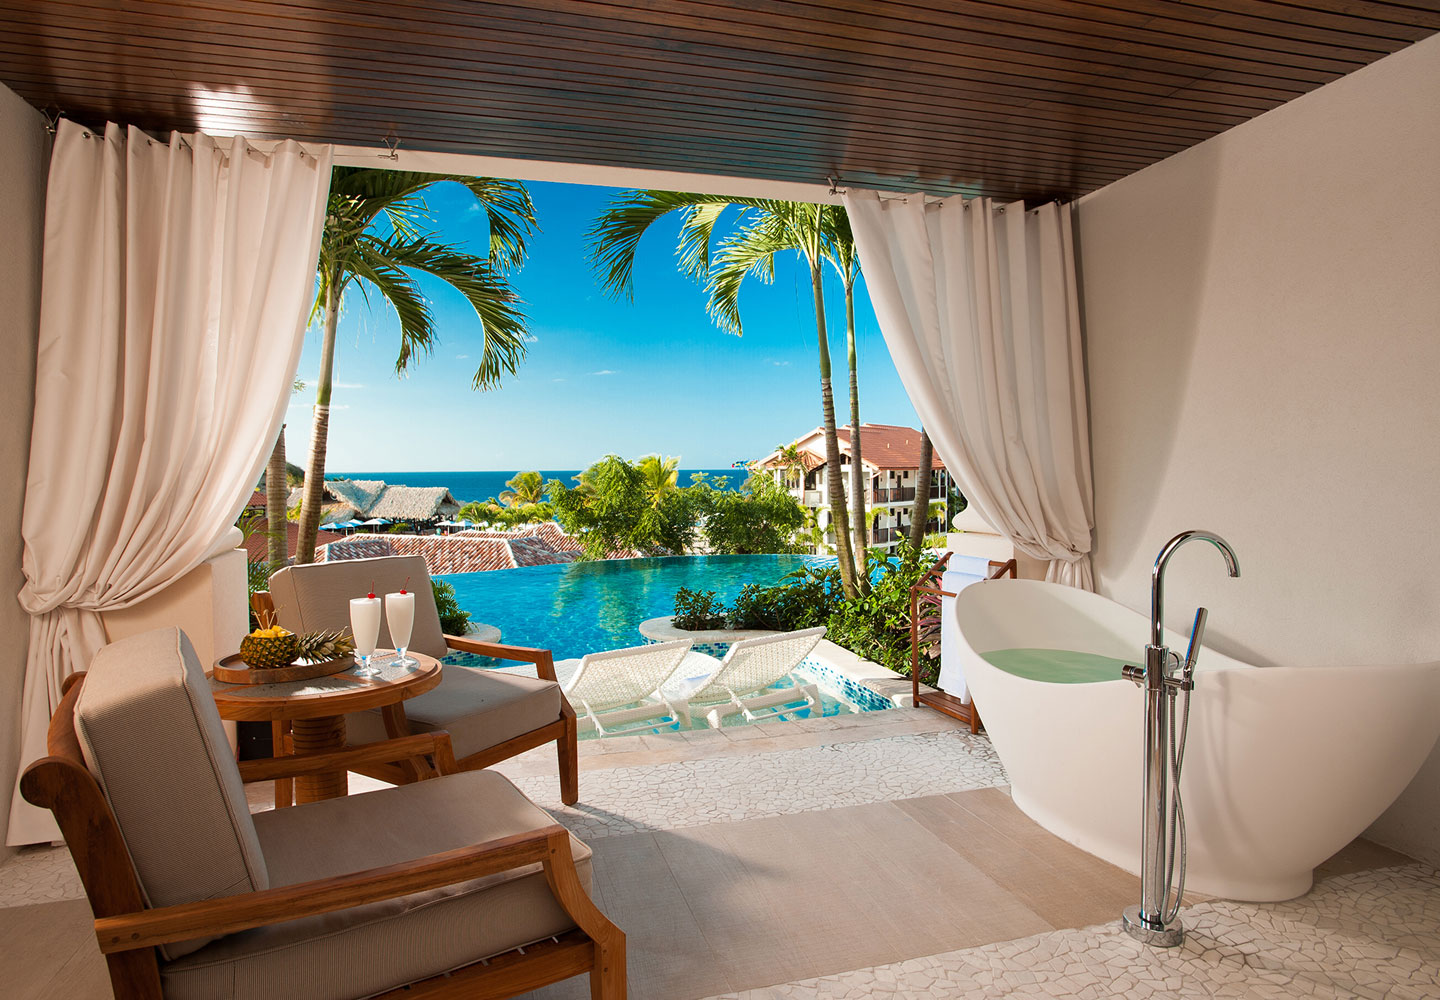 Sandals LaSource - Grenada